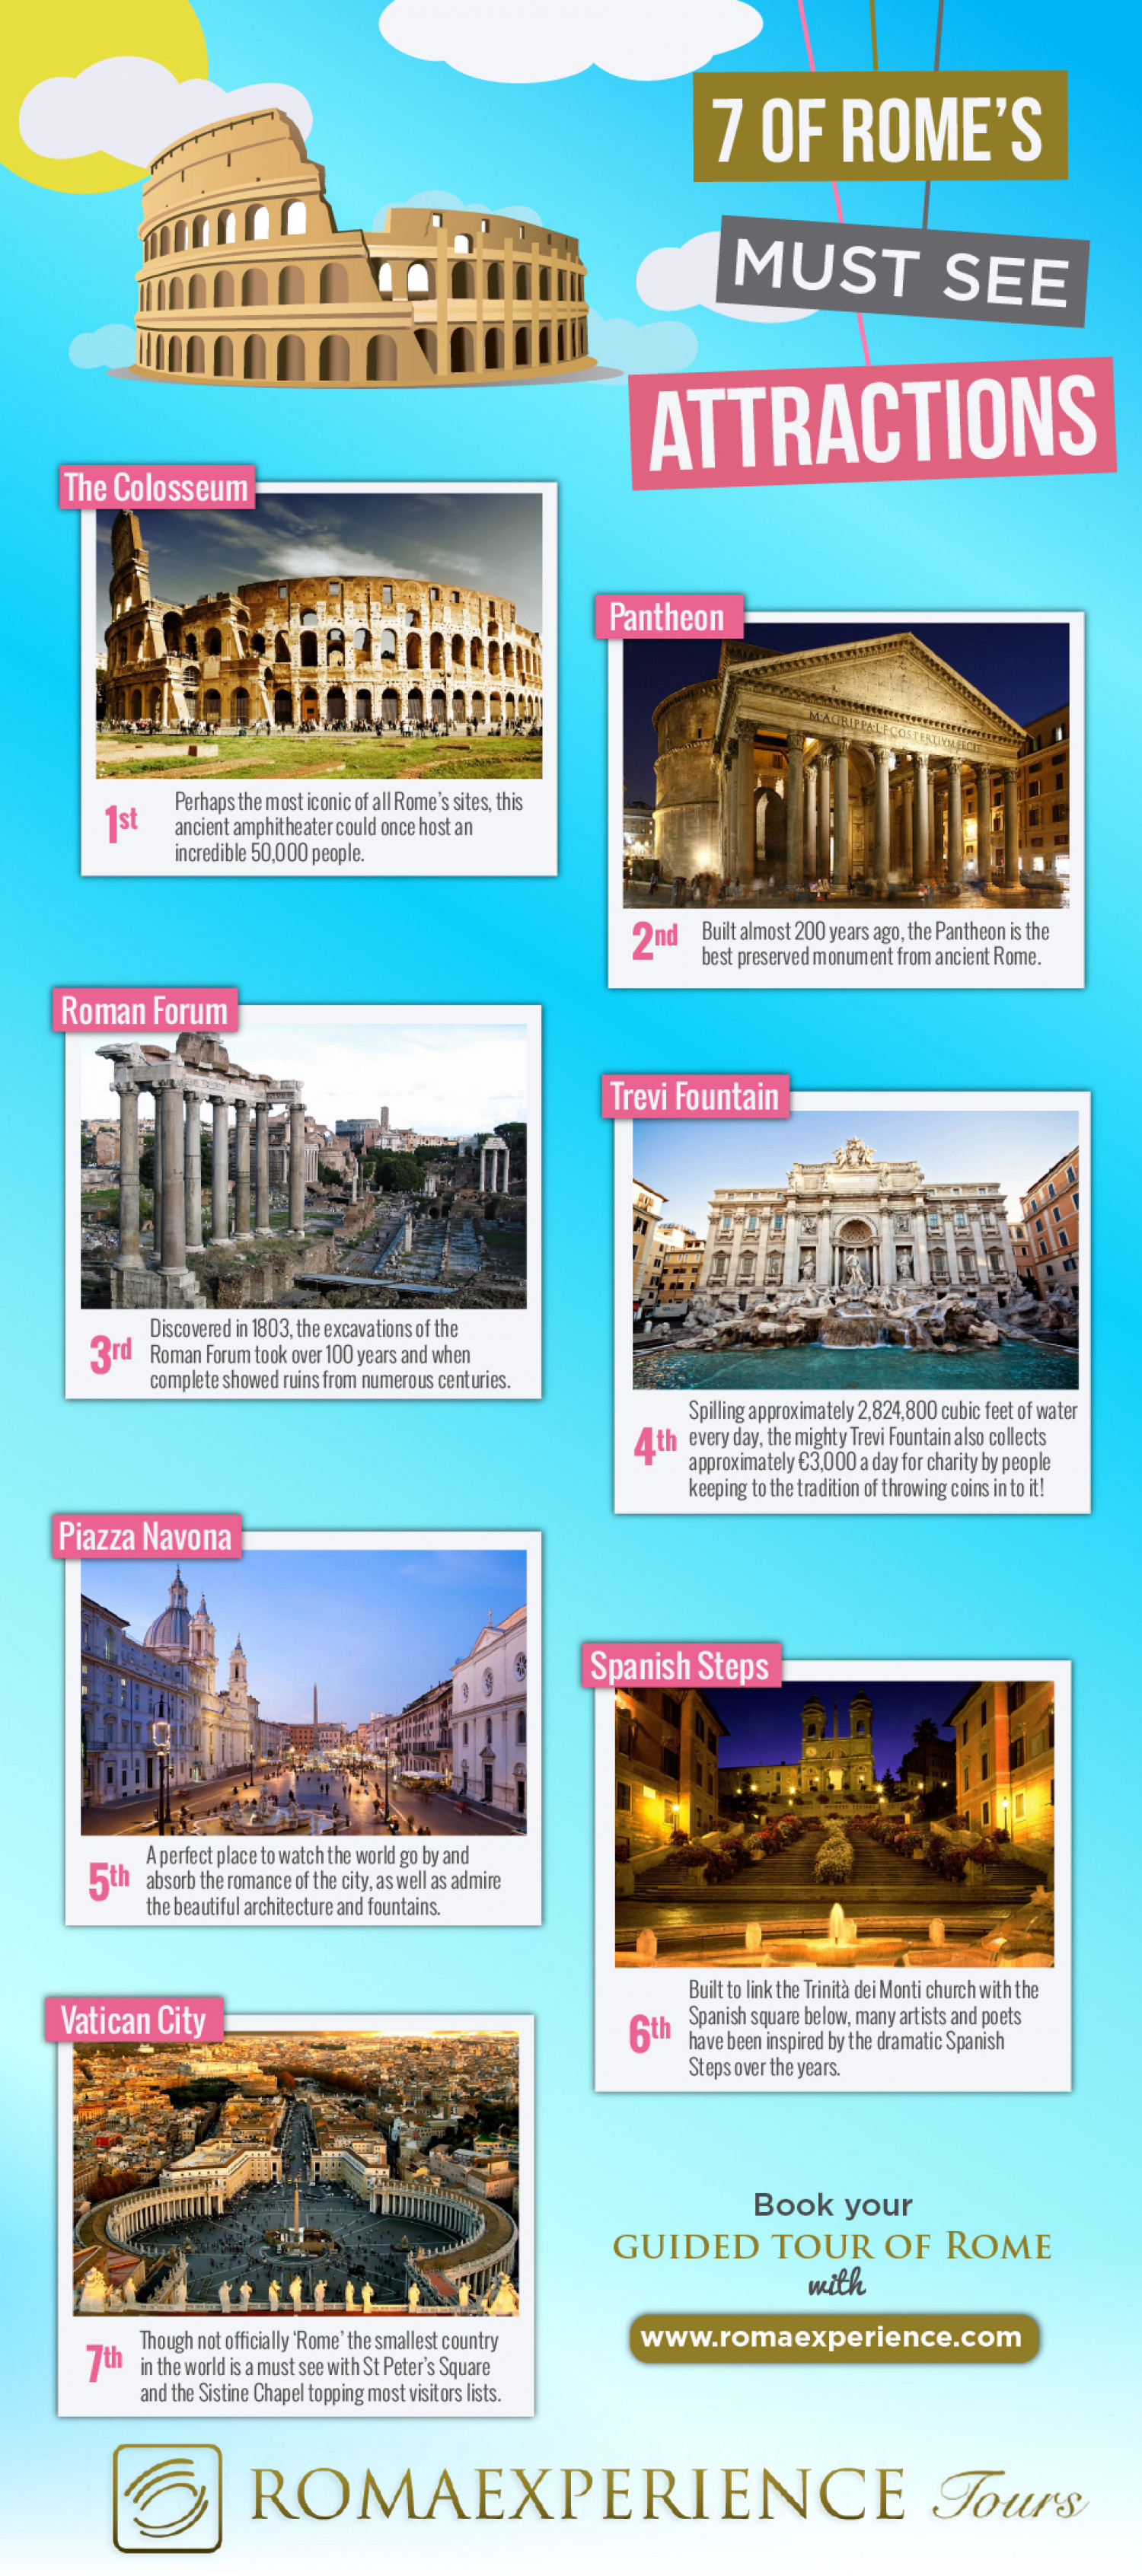 7 of Rome's Must See Attractions Infographic